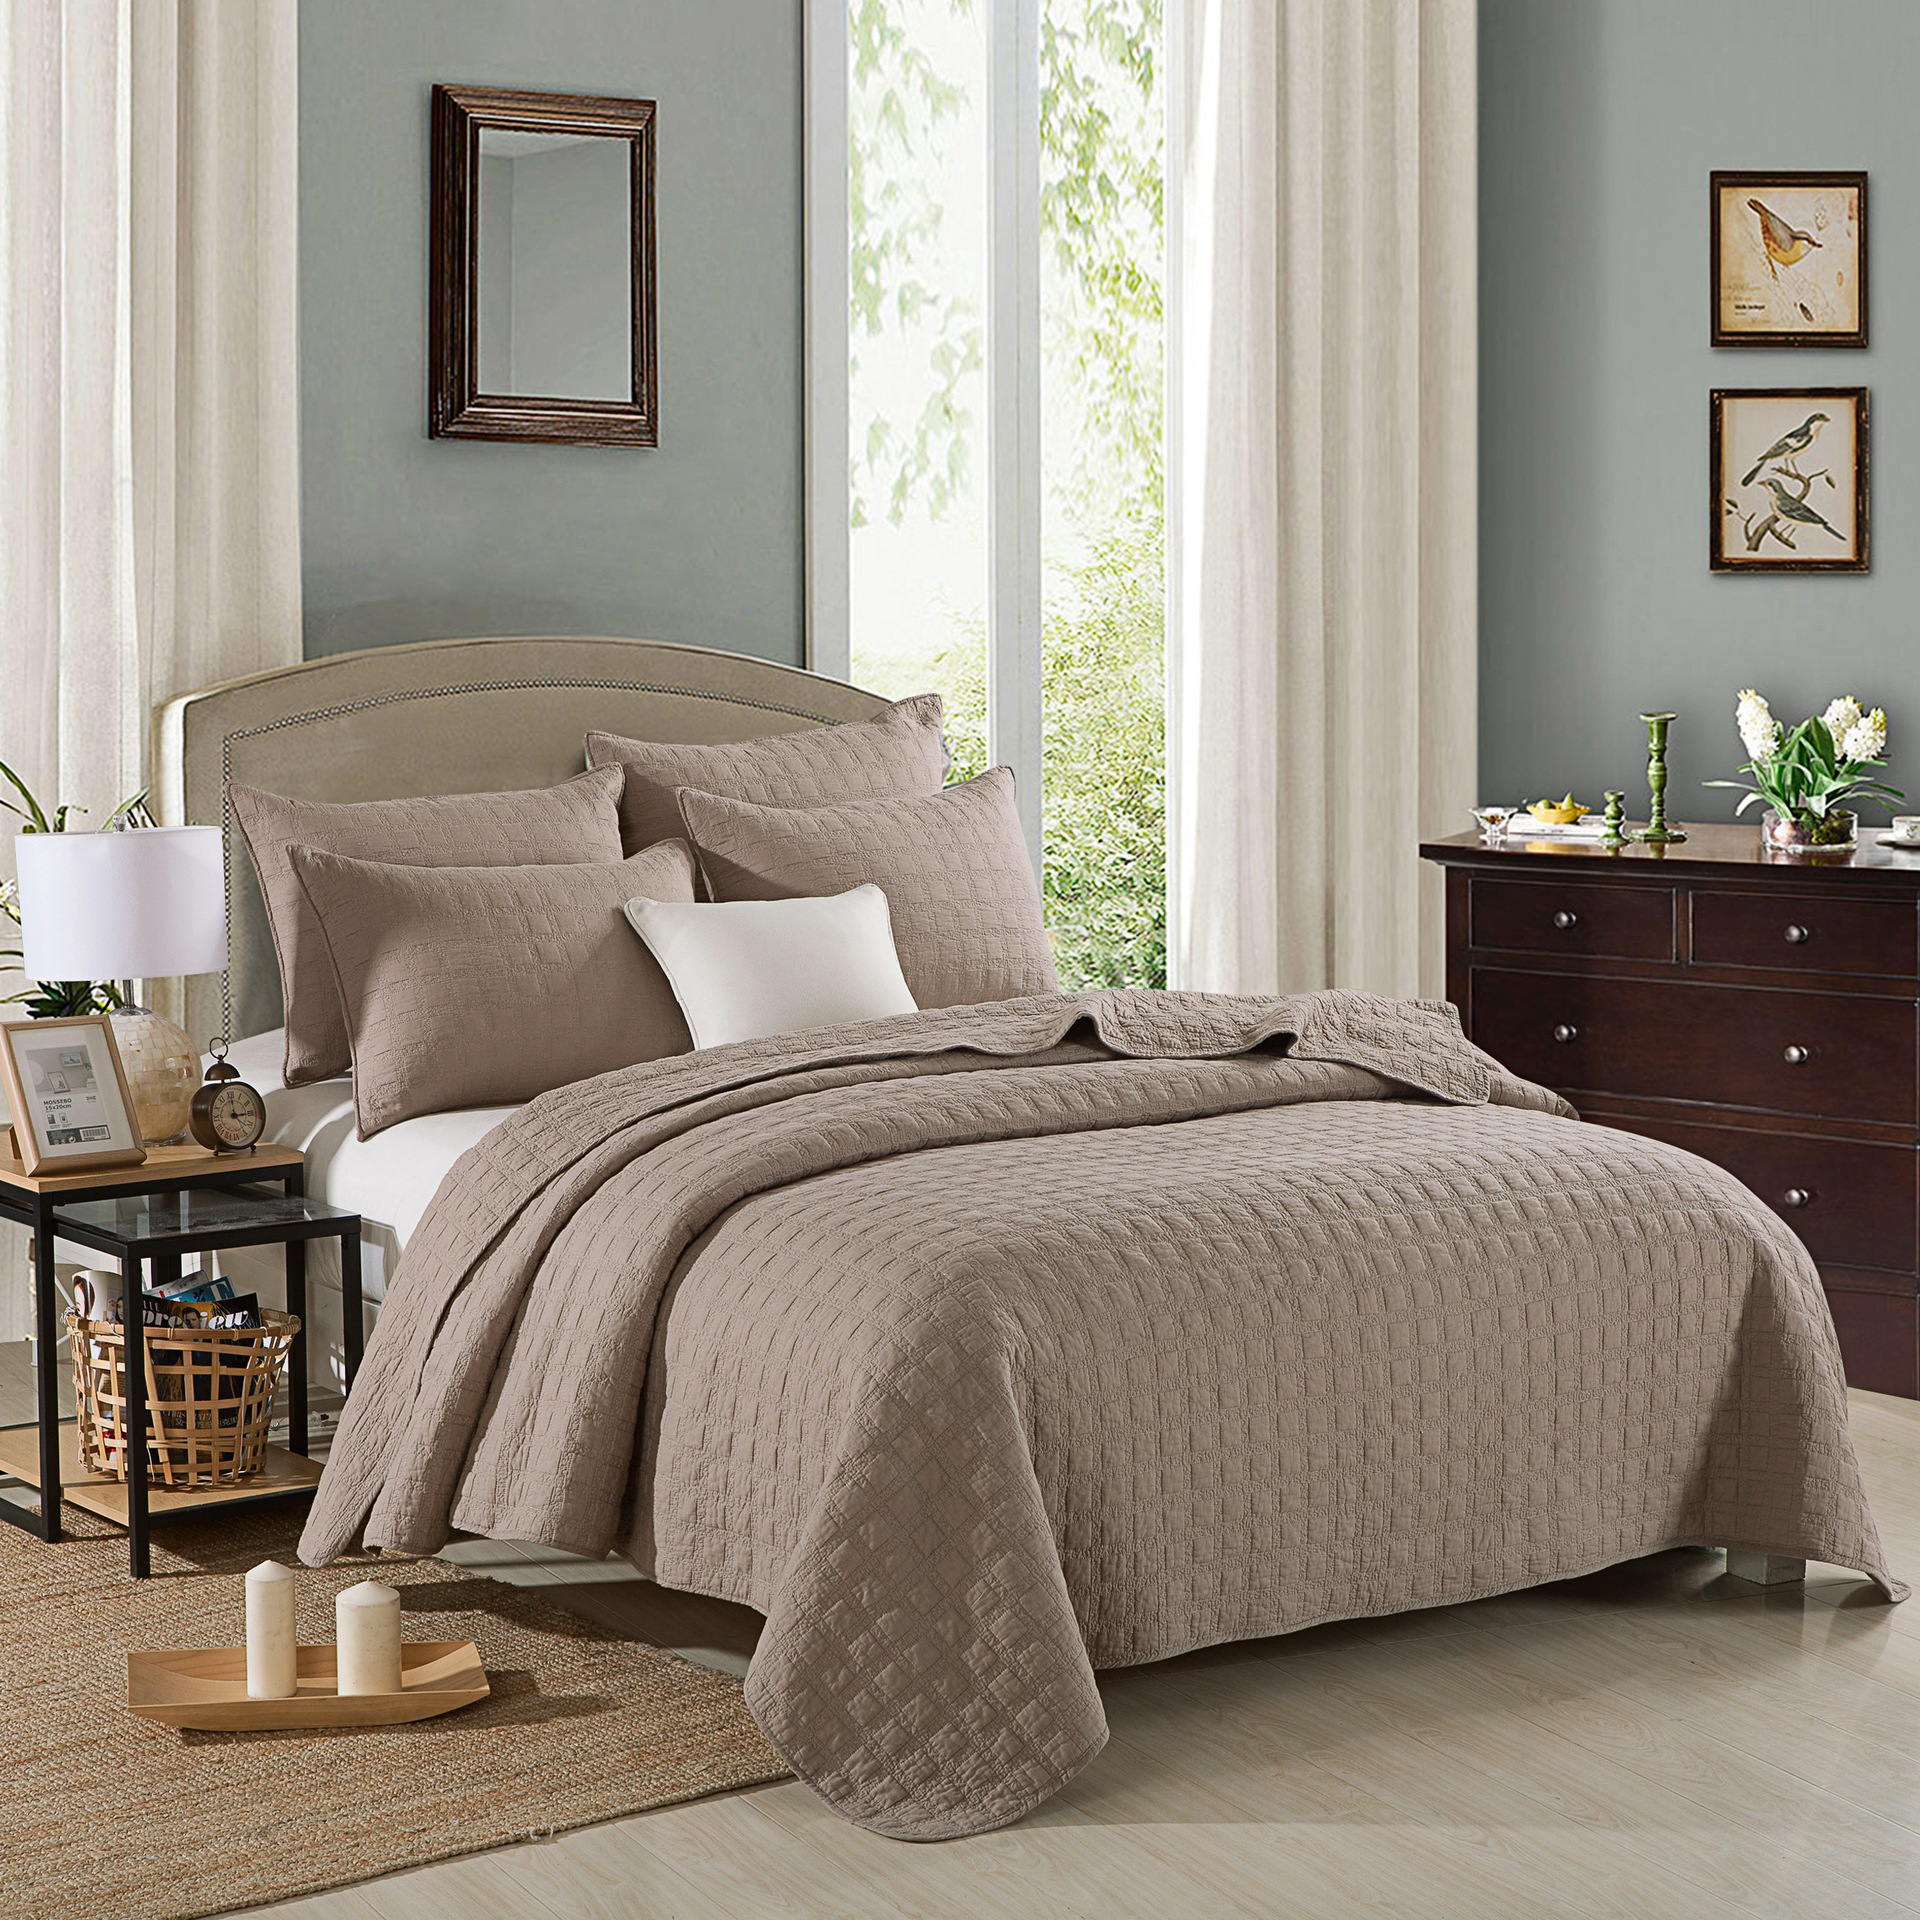 FAMVOTAR Luxury 3 Piece Quilted Bedspread Coverlet Set Square Patterned all season 100 Cotton Bedspread Coffee